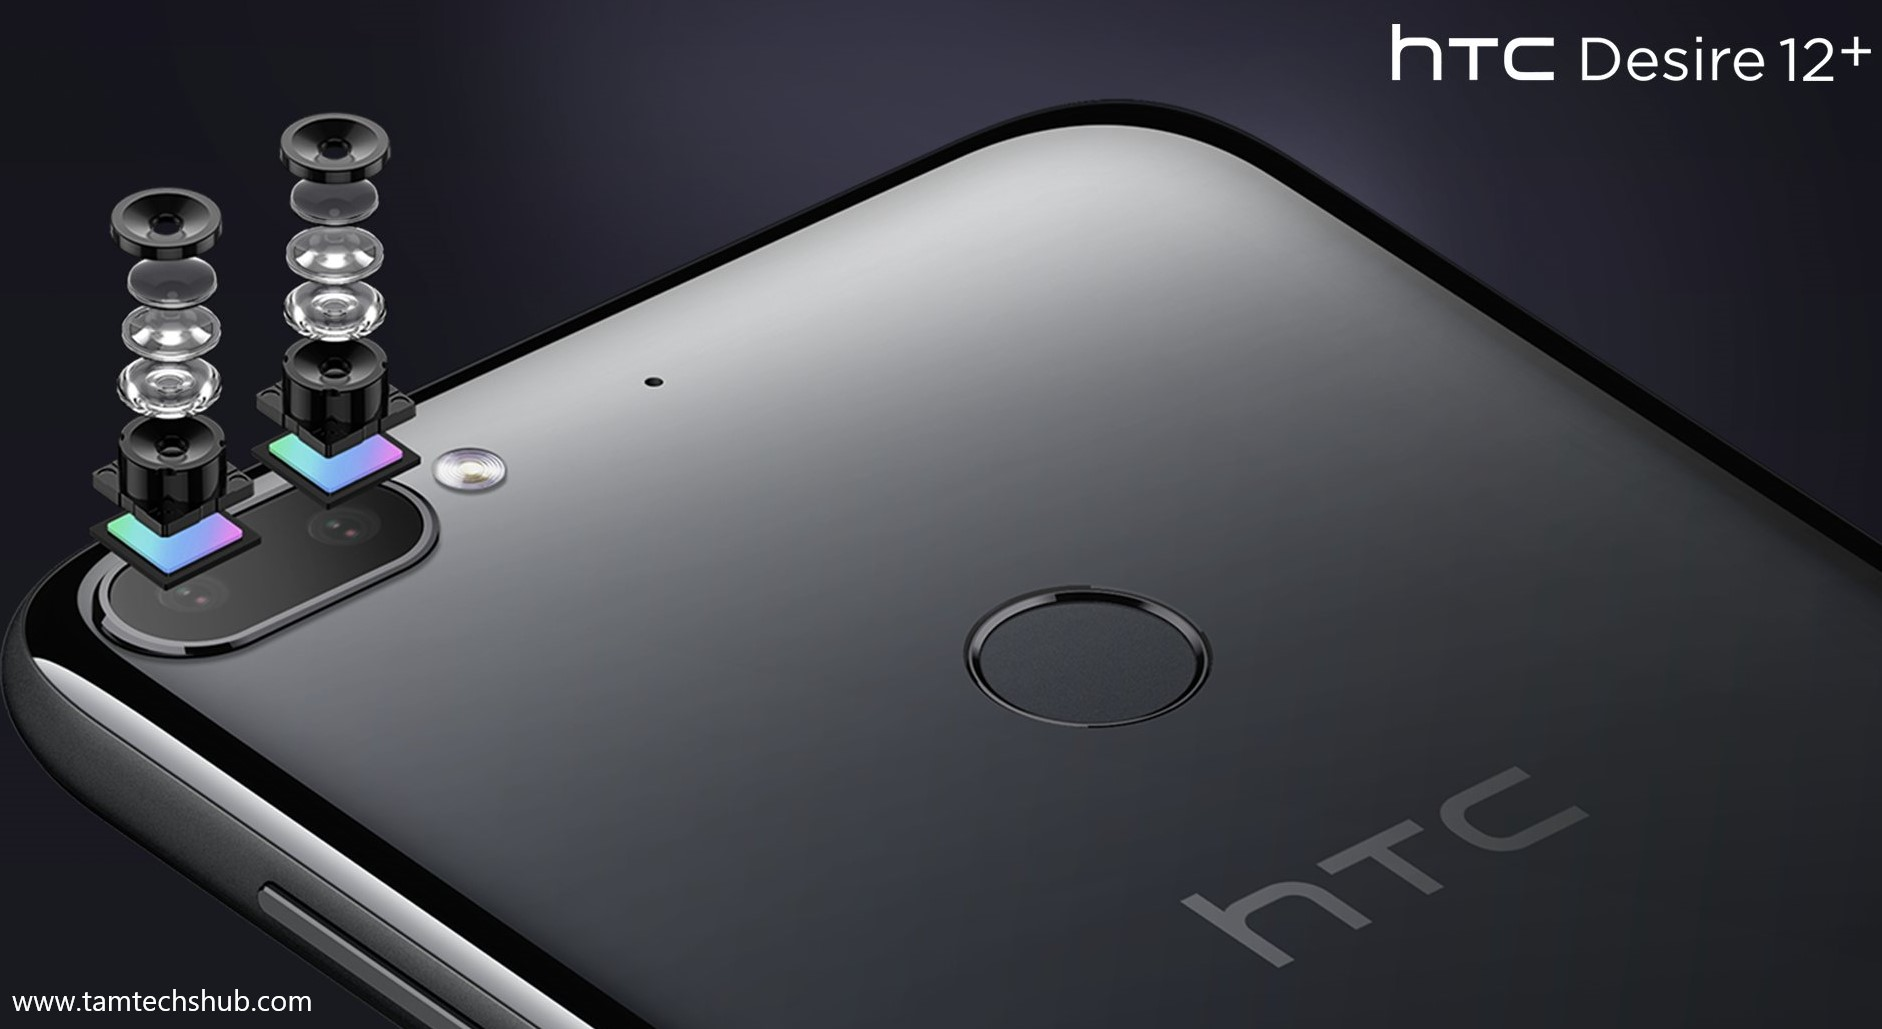 HTC Desire 12+ Smartphone Review